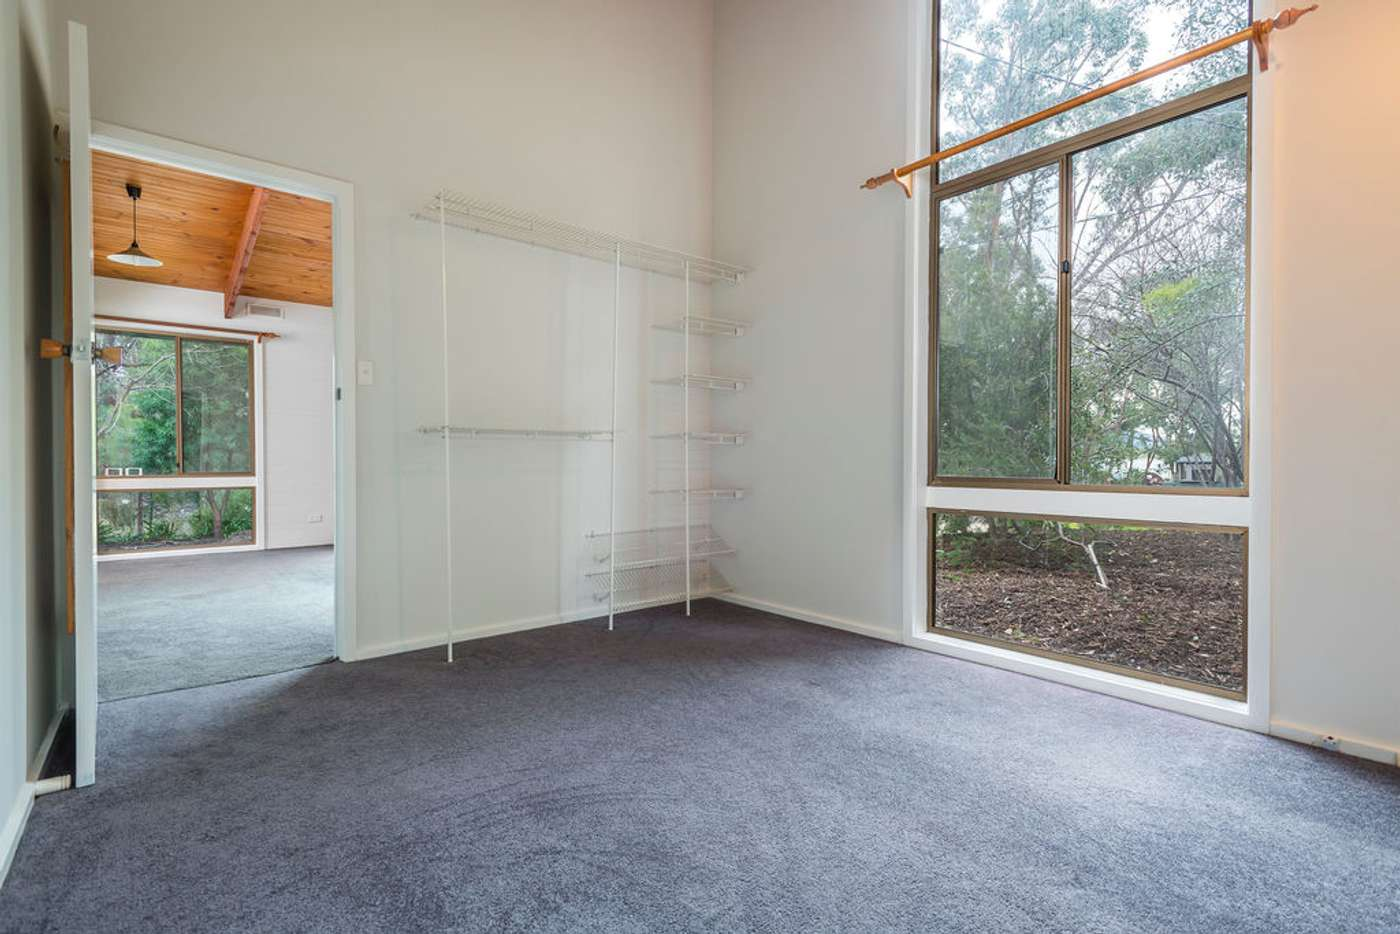 Fifth view of Homely house listing, 10 Williams Avenue, Macedon VIC 3440